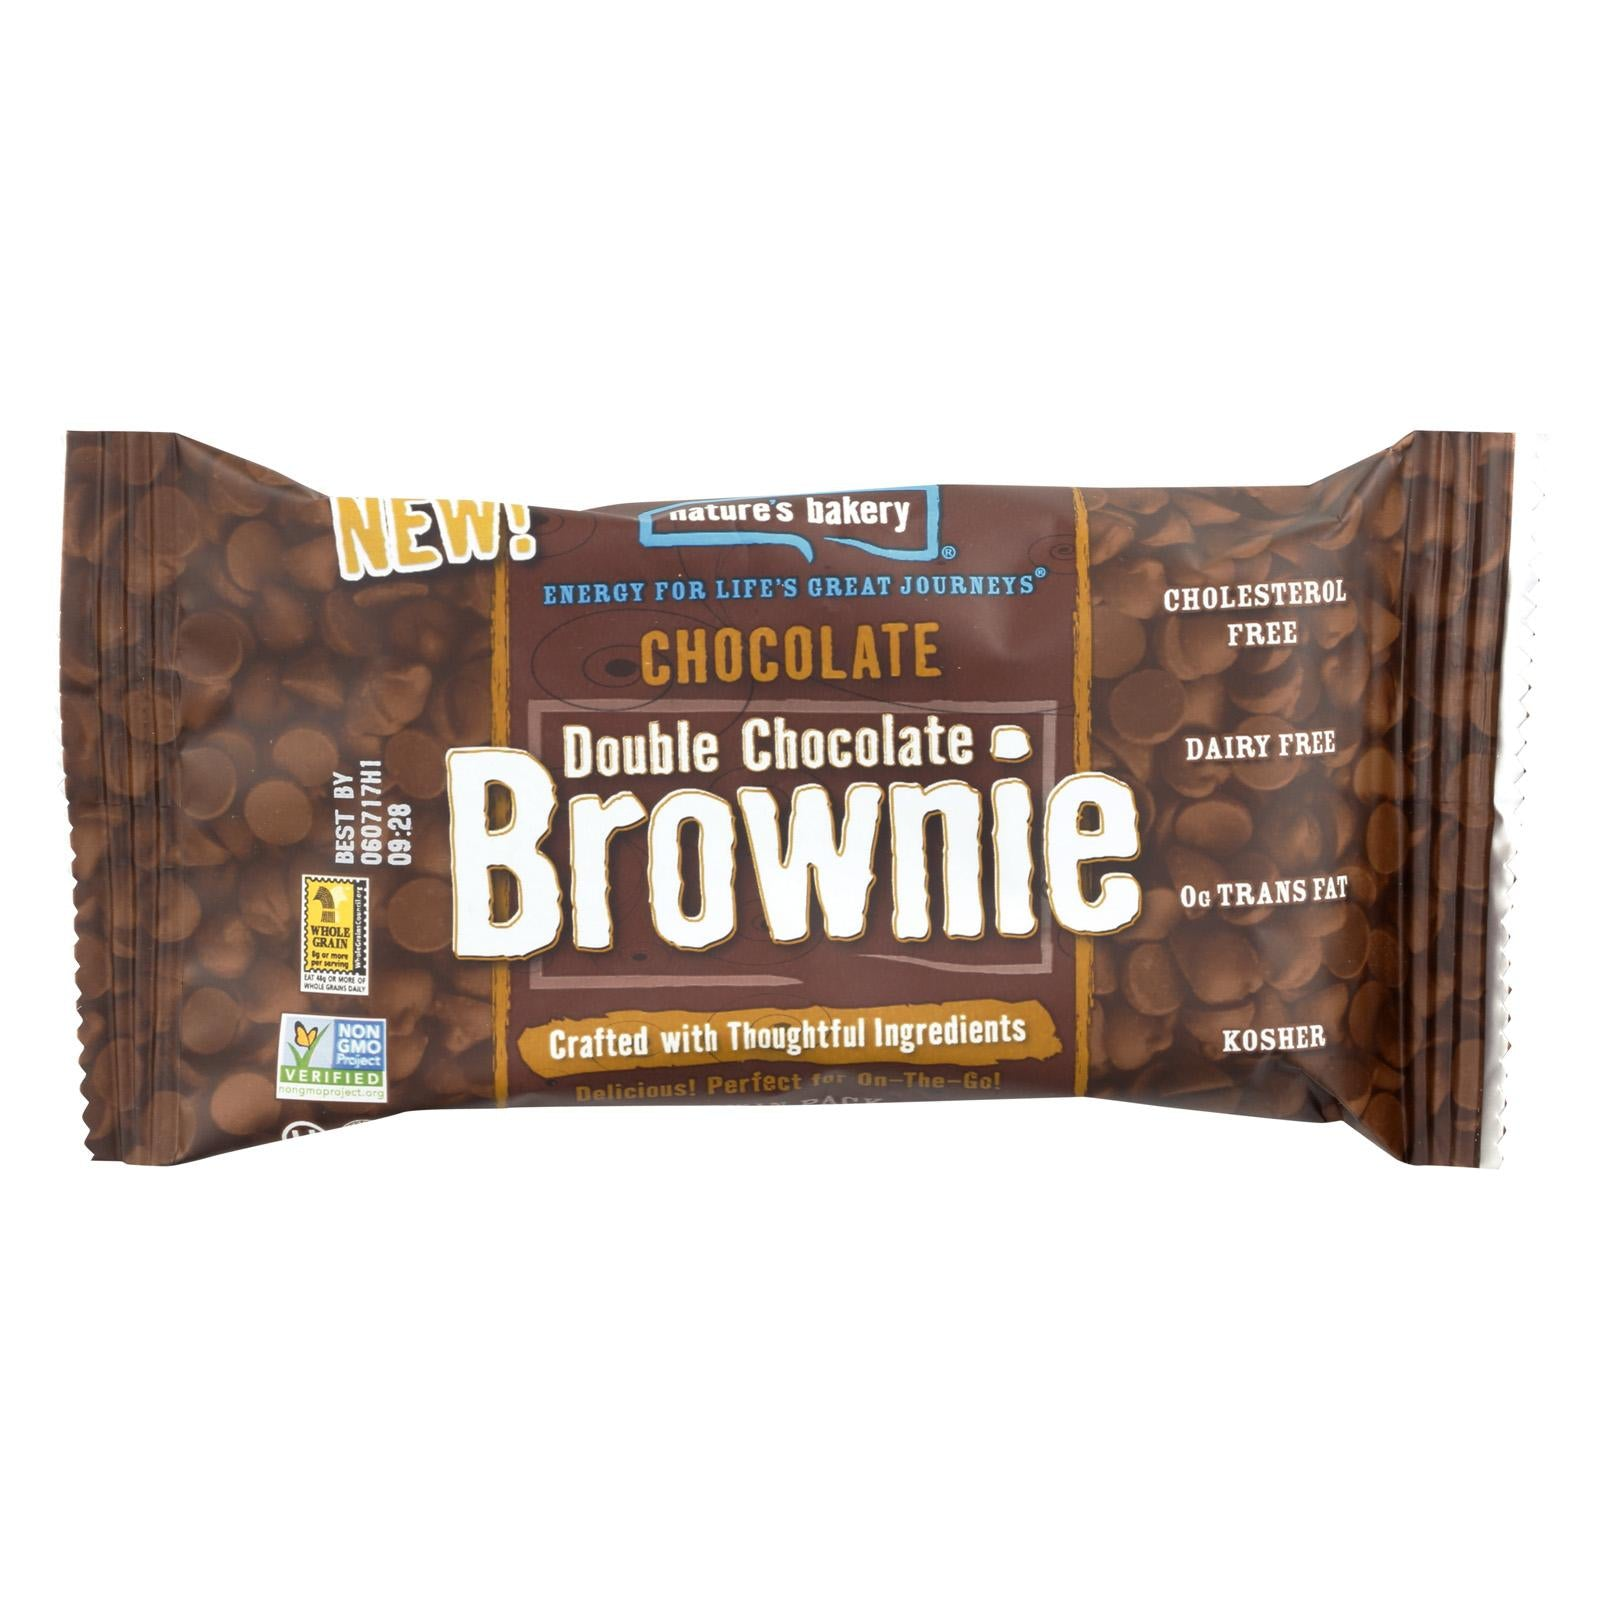 Nature's Bakery Chocolate Brownie - Double Chocolate: 12 bars